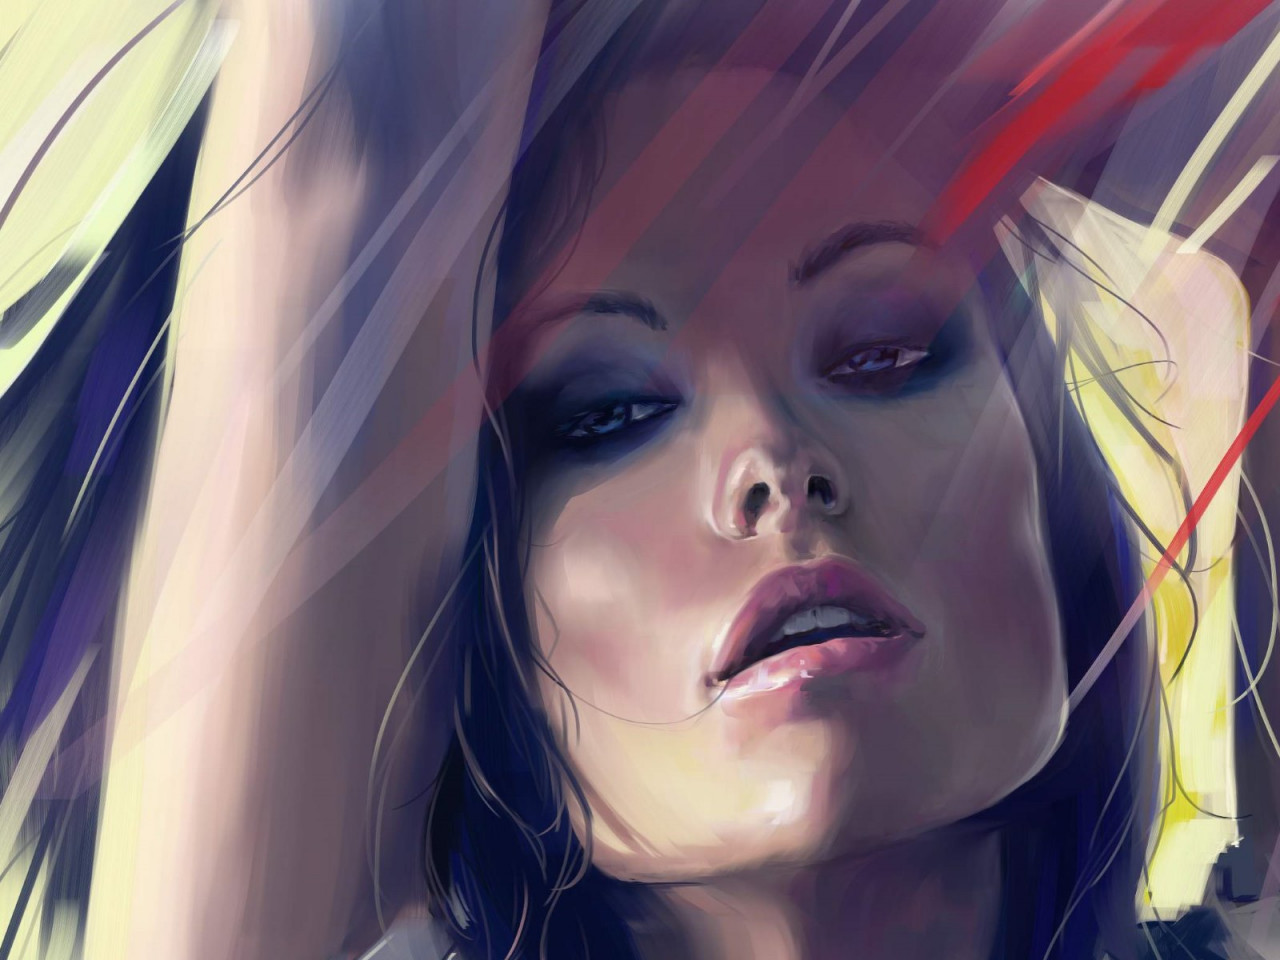 Olivia Wilde digital art portrait wallpaper 1280x960